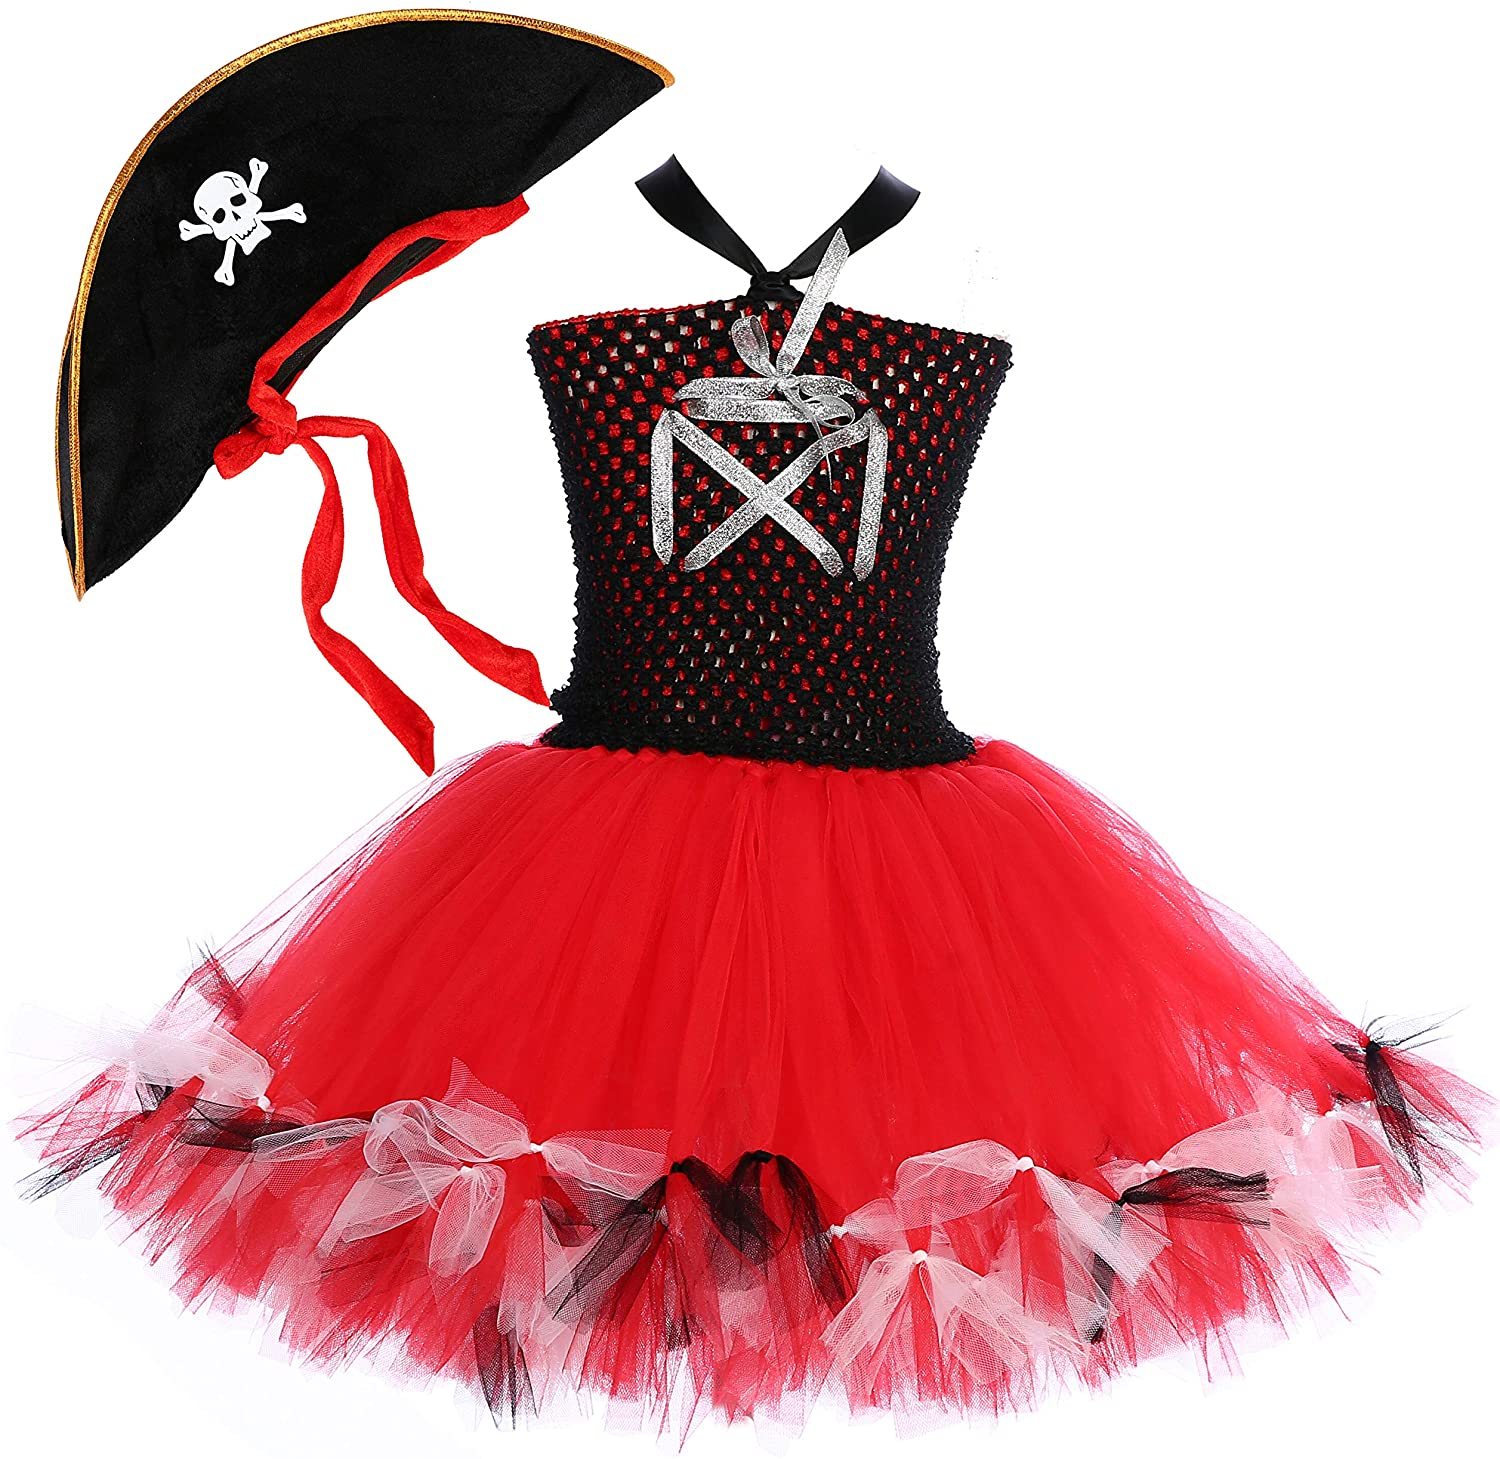 Tutu Dreams Pirate Costume for Girls with Hat Princess Dress Birthday Halloween Masquerae Party